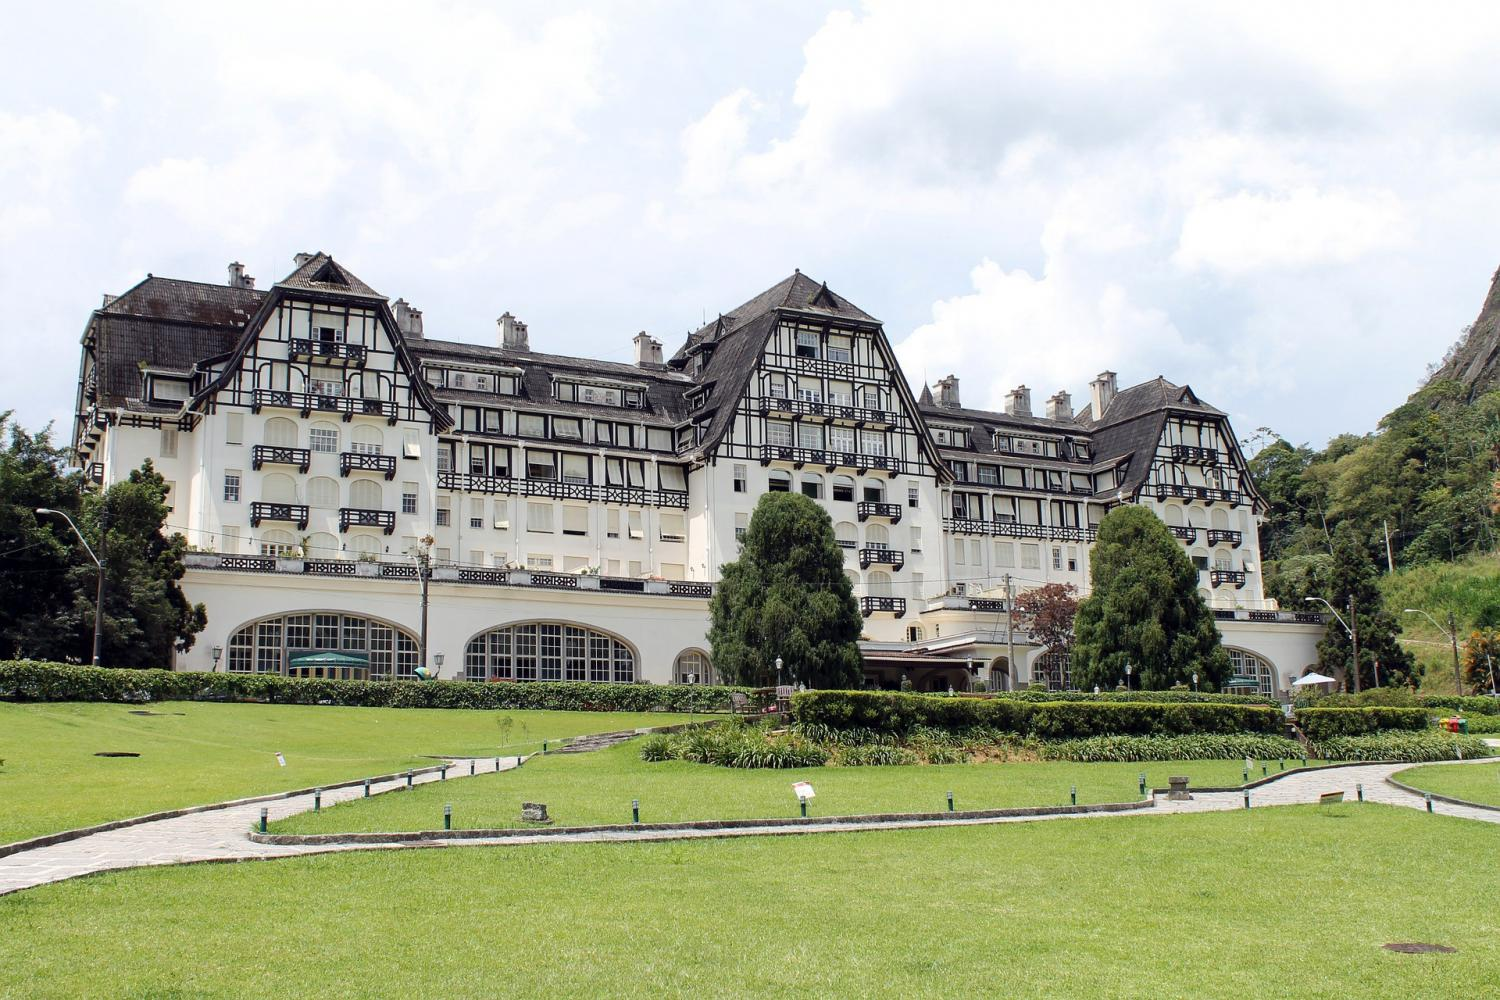 Visit the charming landscape of Petropolis